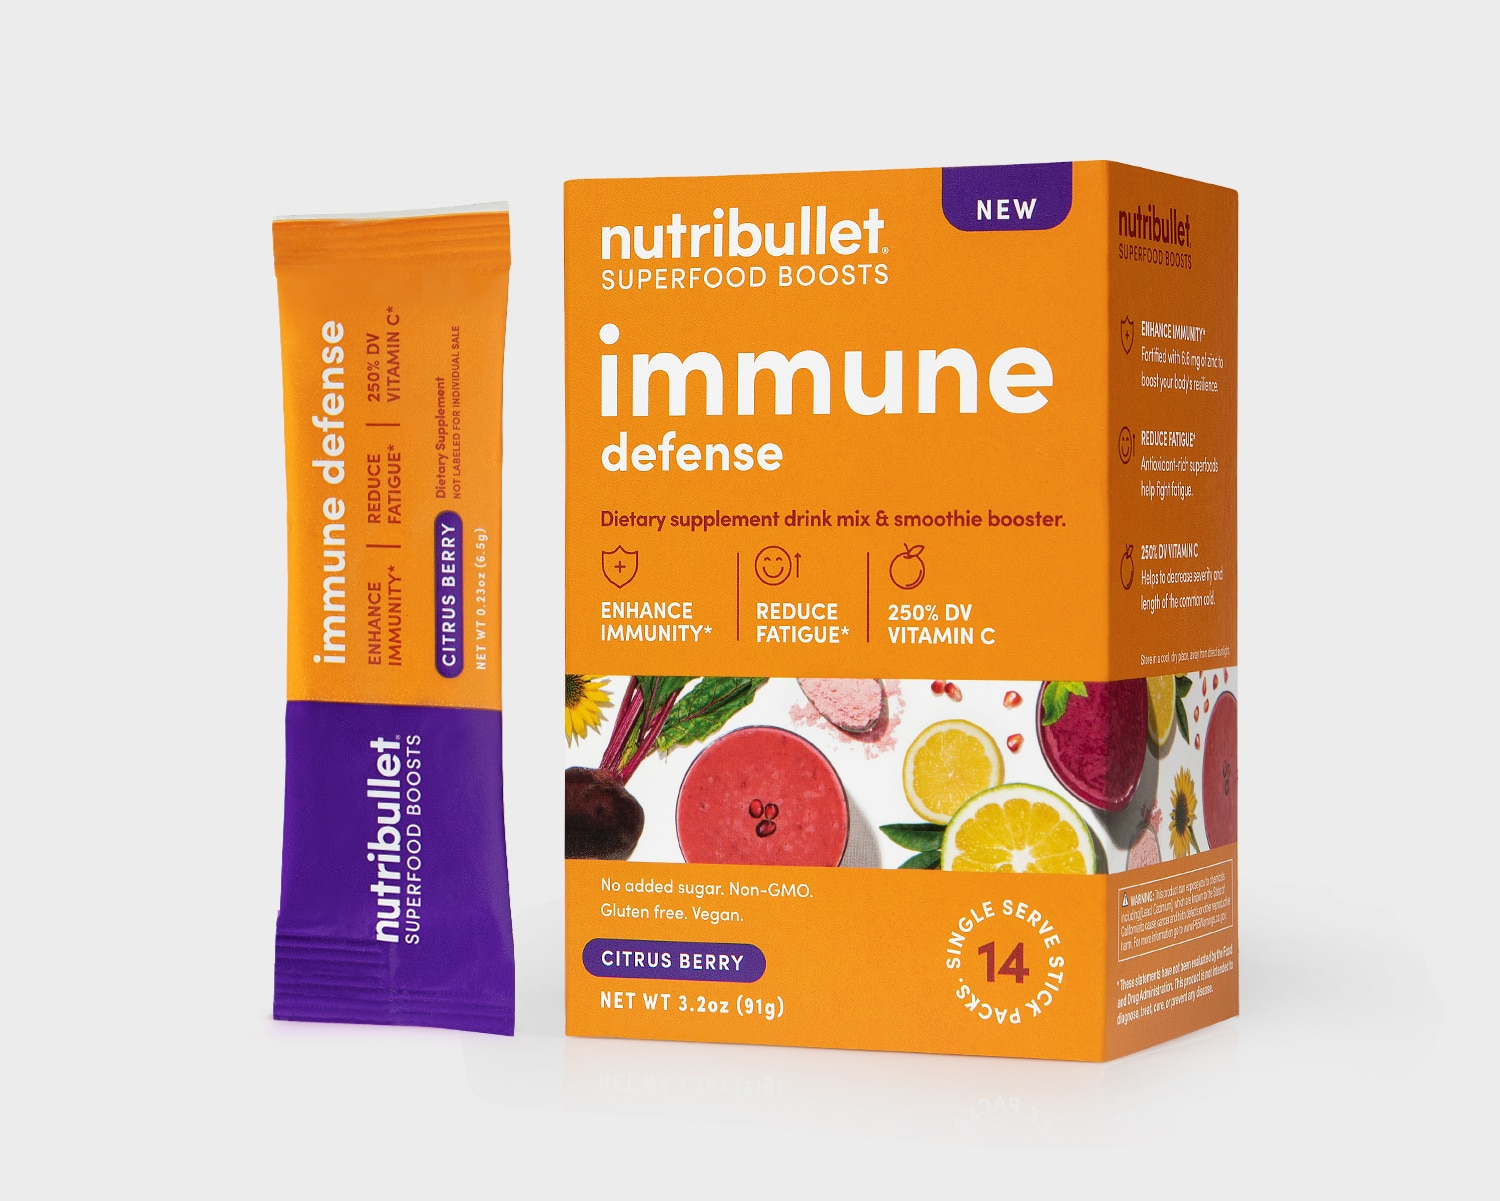 NutriBullet Immune Defense orange box with smoothies, fruits, vegetables label and a packet of '14 stick packs'